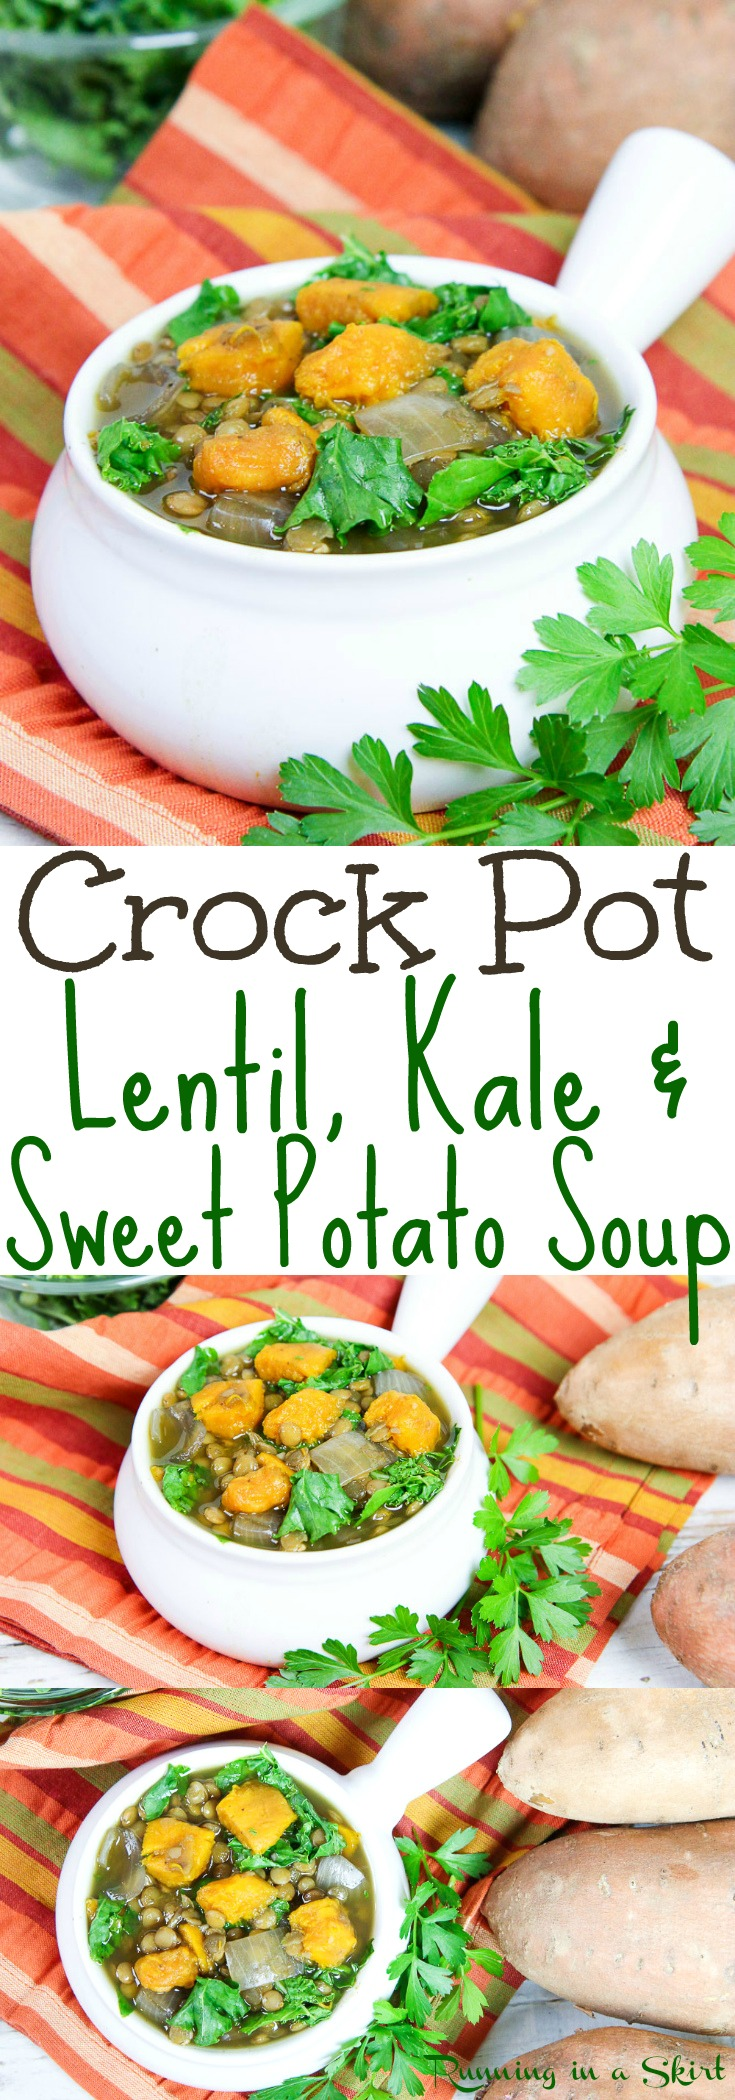 Crock Pot Lentil Sweet Potato Soup recipe- a perfect healthy & simple meal for the slow cooker.  Packed with other veggies like kale... perfect food for families.  Look no further for tasty vegan recipes! / Running in a Skirt via @juliewunder